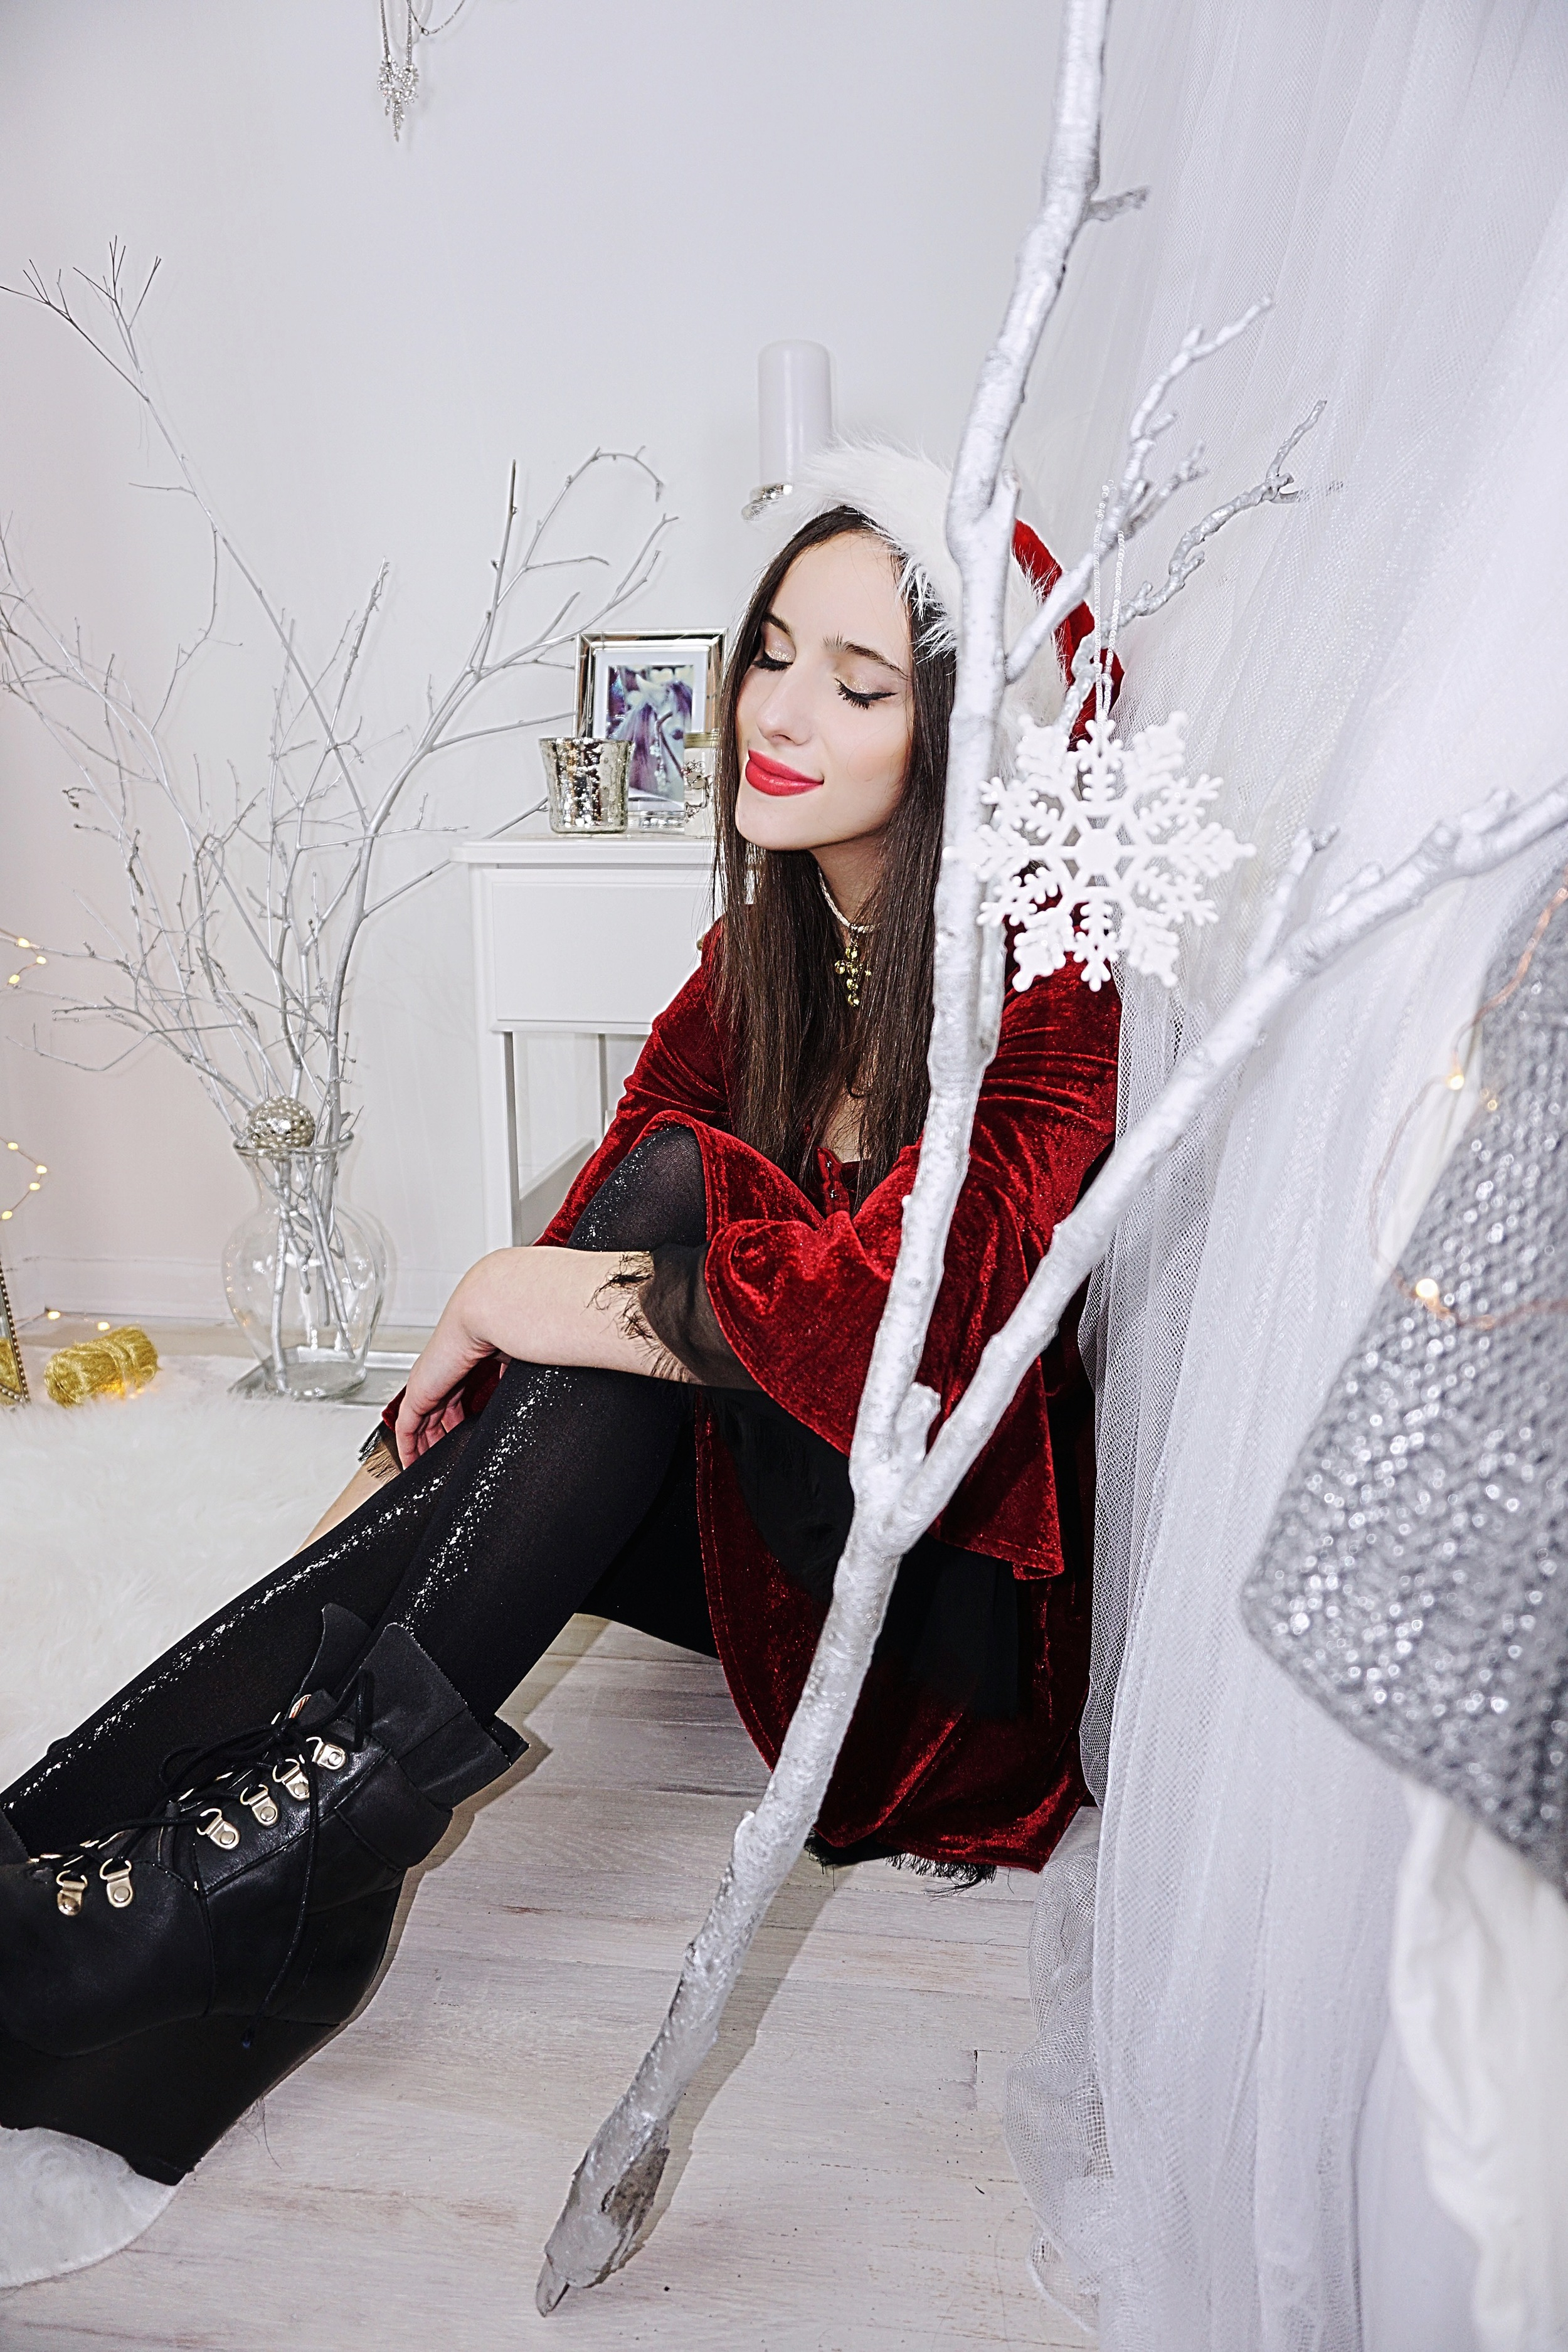 dress:  unif via dollskill  | tights:  urban outfitters  | boots:  n/a  | choker:  diy  | hat:  cvs  | jewelry wall hooks:   imm living   | ornament stand:   pier one imports   | snowglobe ornament:   anthropologie